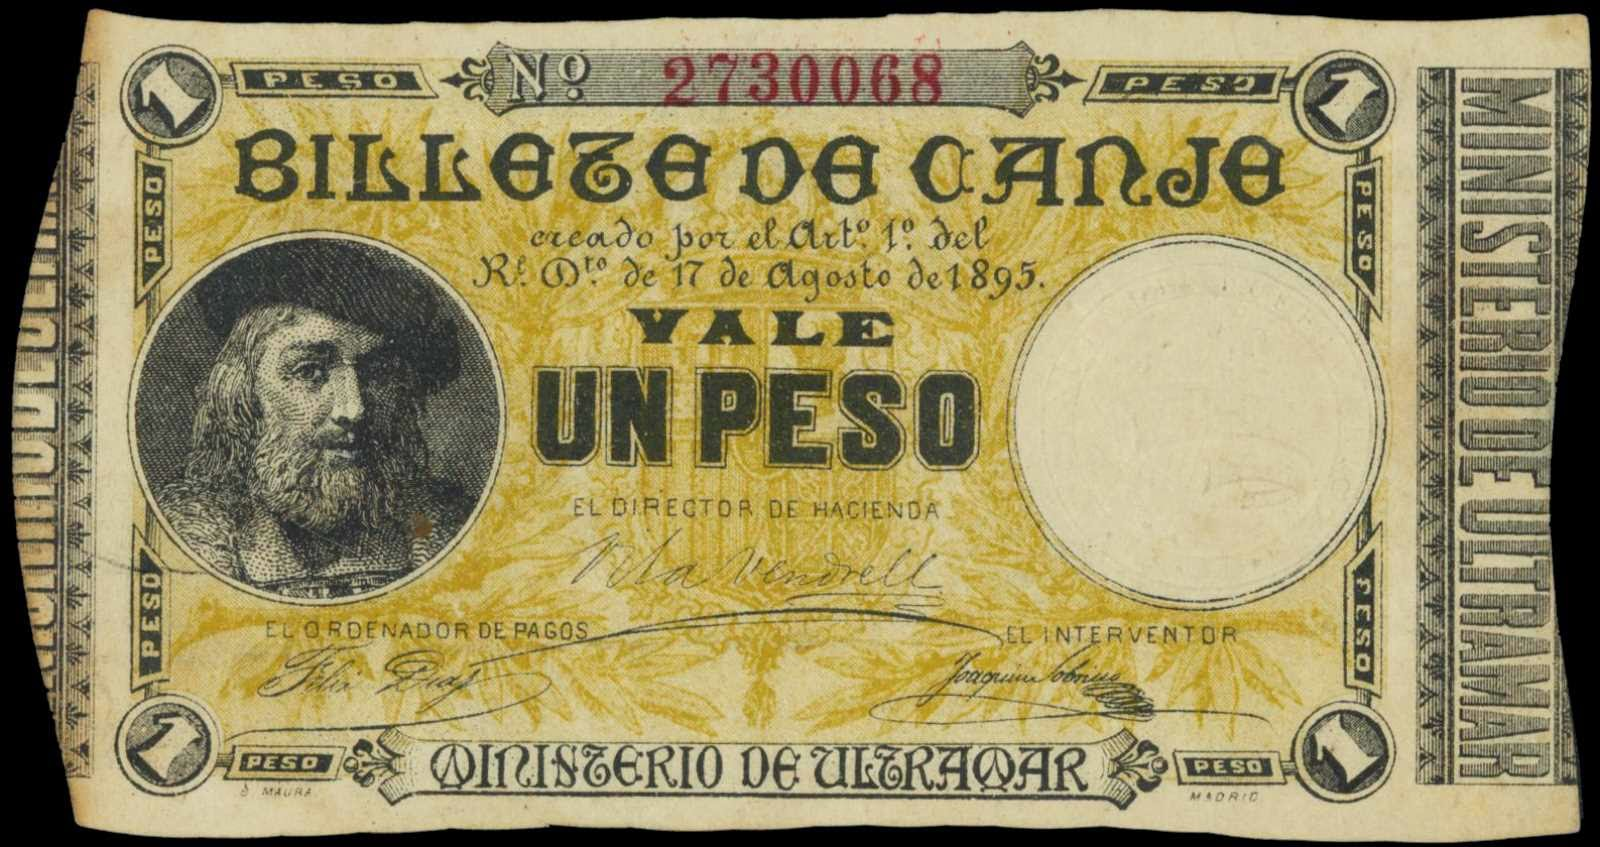 Puerto Rico 1 Peso Exchange Note 1895 Billete De Canje